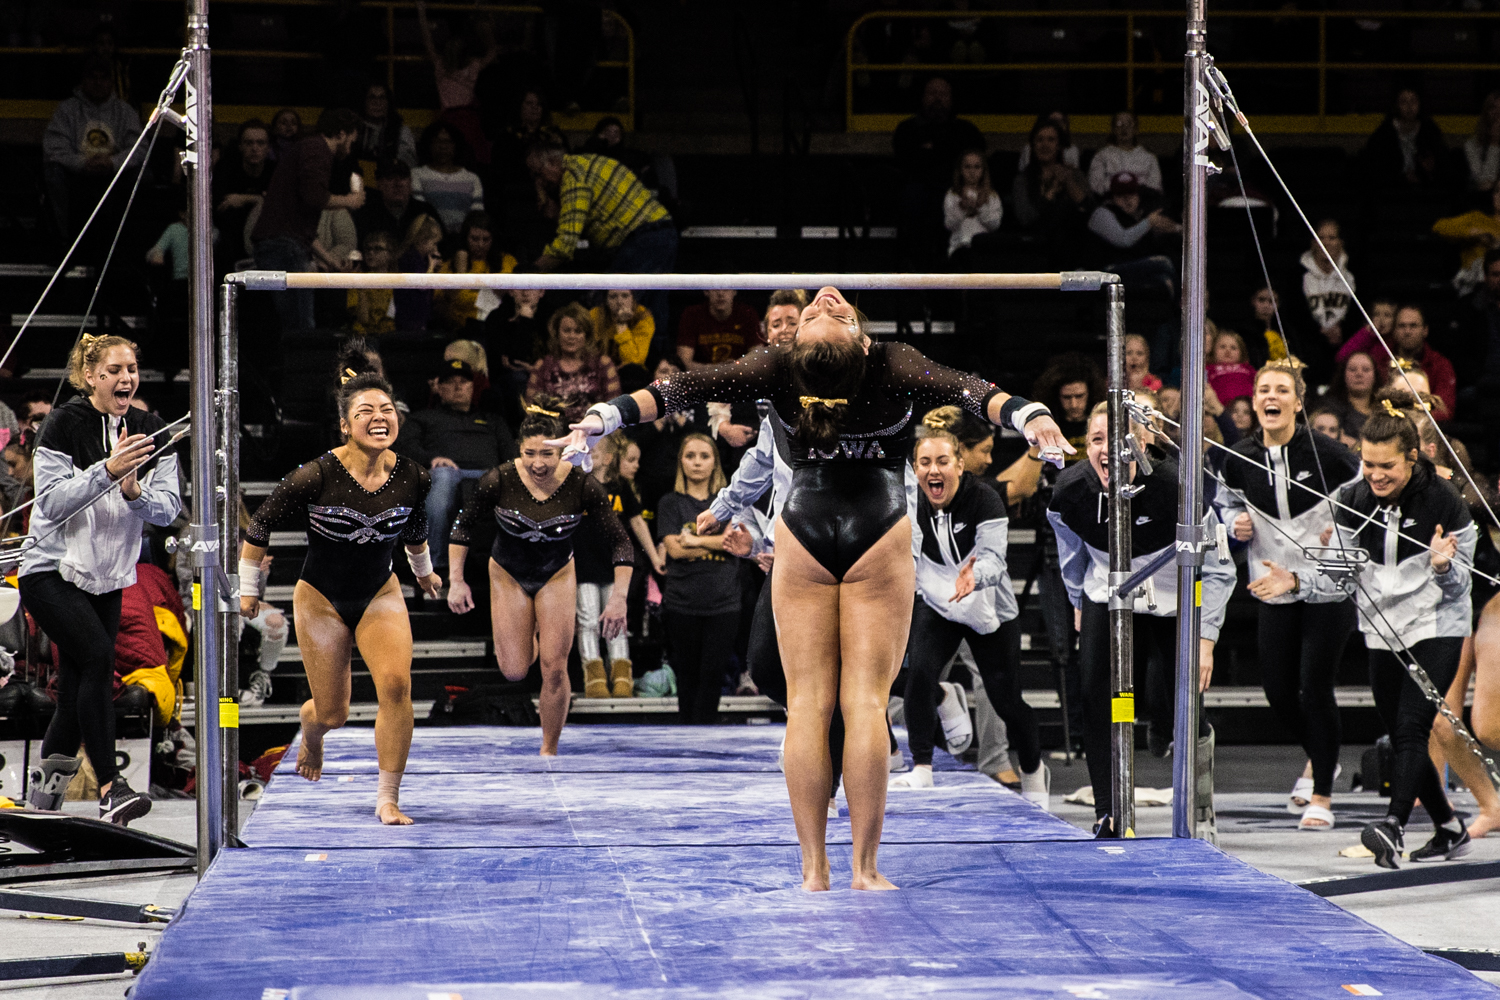 Iowa%27s+Jax+Kranitz+competes+on+uneven+bars+during+a+women%27s+gymnastics+meet+between+Iowa+and+Iowa+State+at+Carver-Hawkeye+Arena+on+Friday%2C+March+1%2C+2019.+Kranitz+scored+9.8+in+the+event.+The+Hawkeyes%2C+celebrating+senior+night%2C+fell+to+the+Cyclones%2C+196.275-196.250.